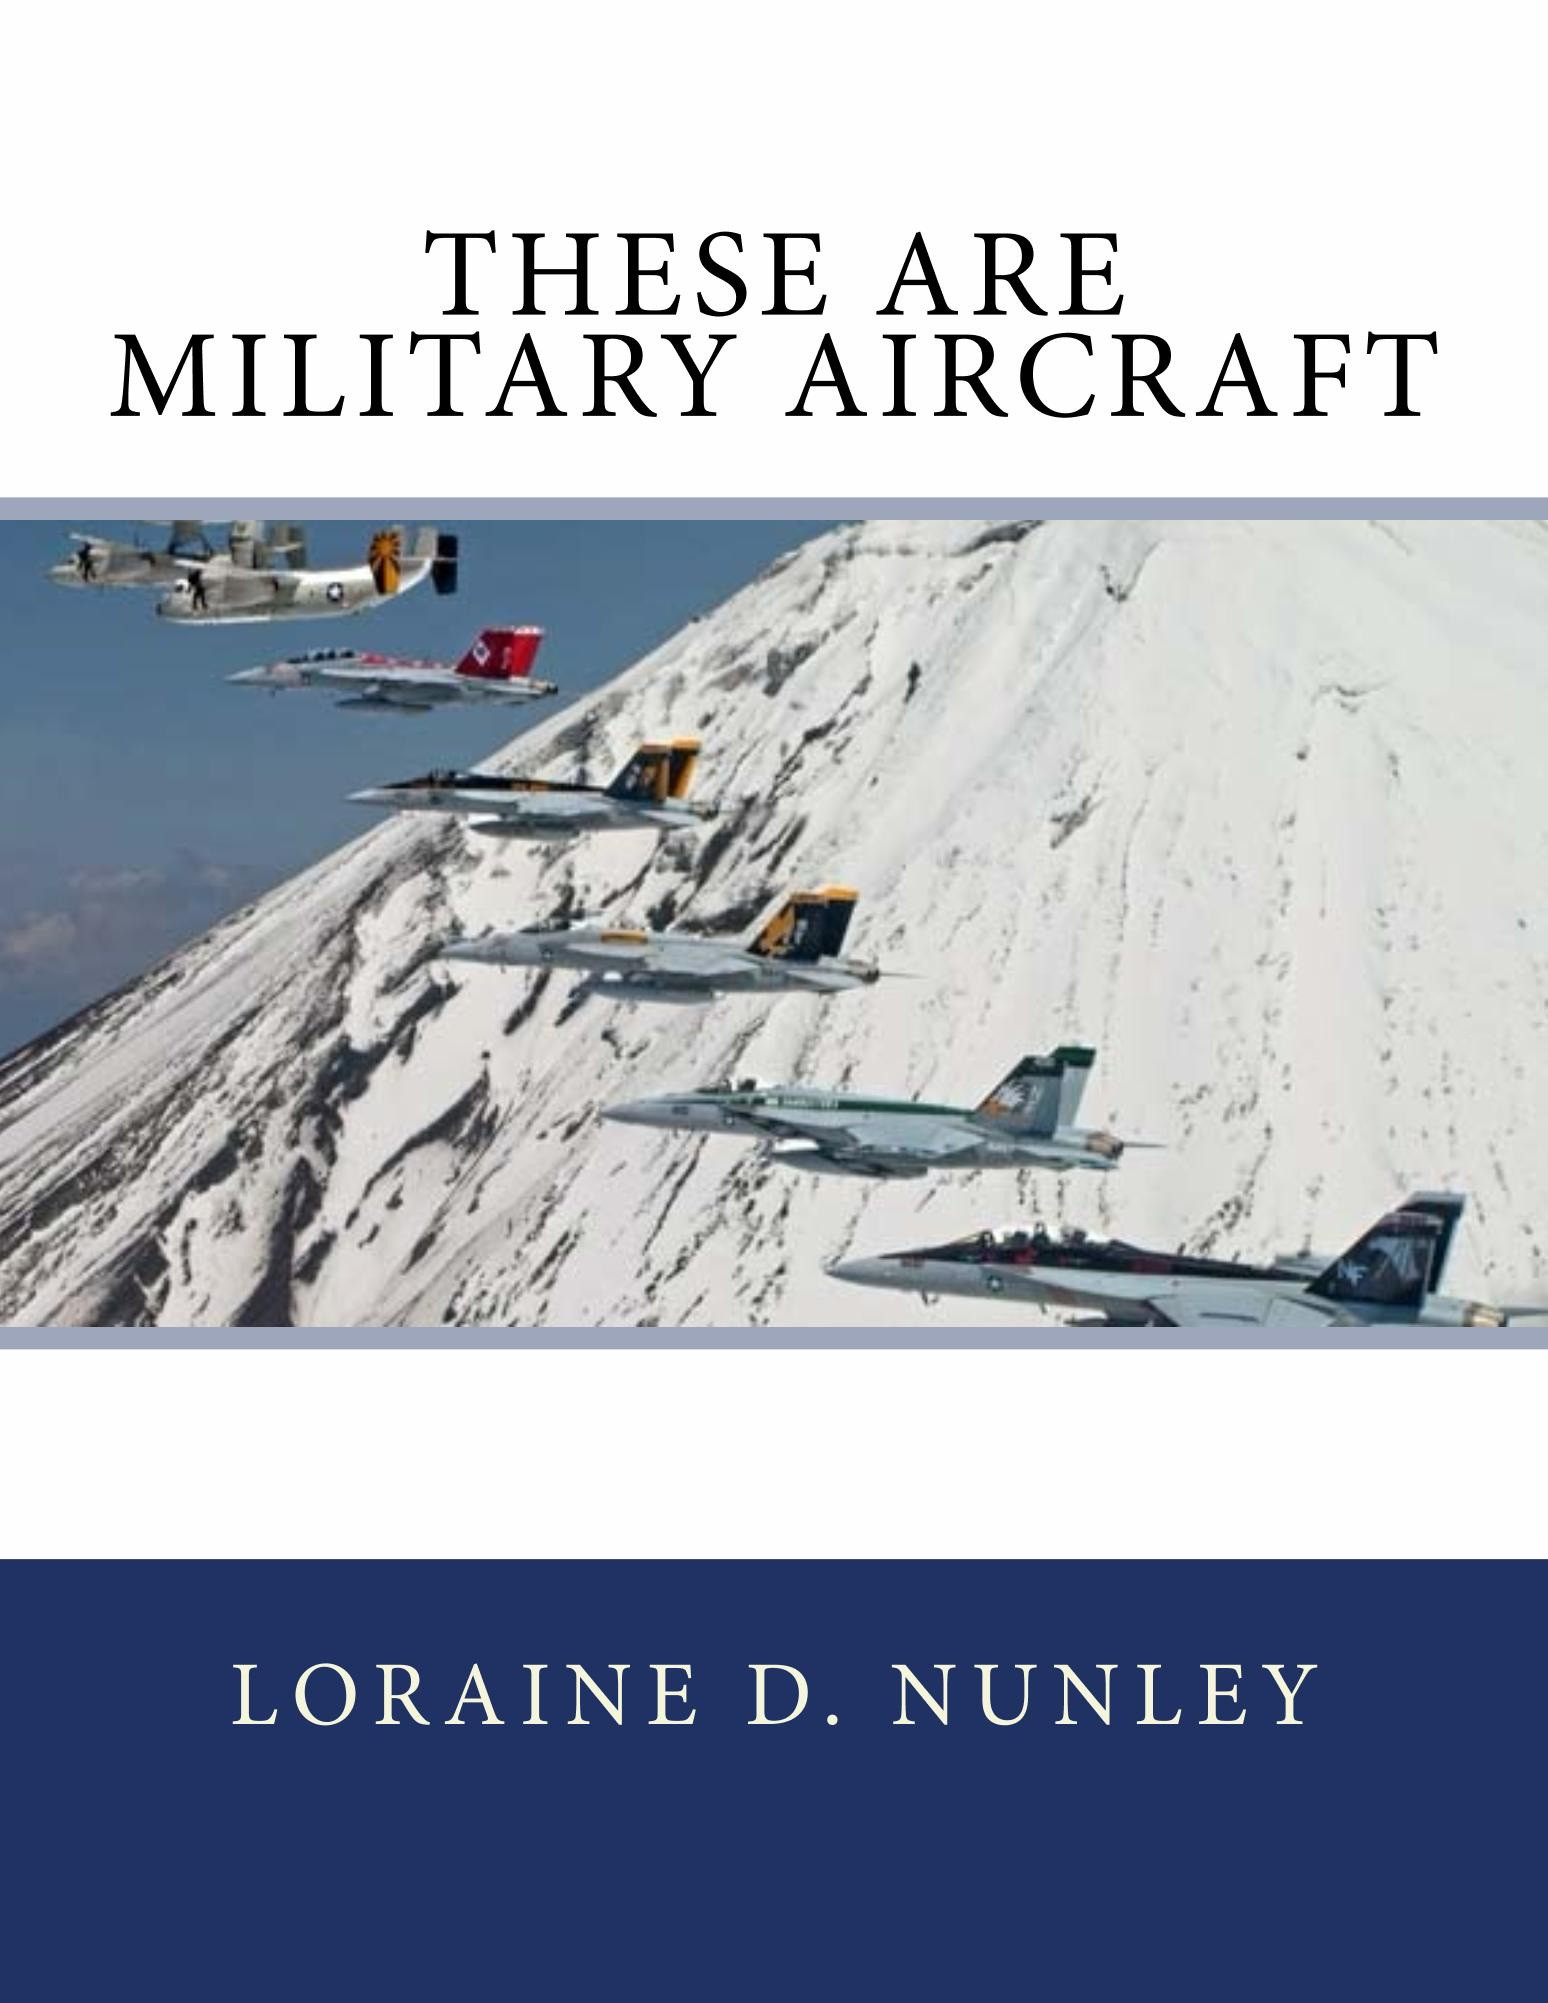 Kindle Freebie Alert: These Are Military Aircraft by Loraine Nunley